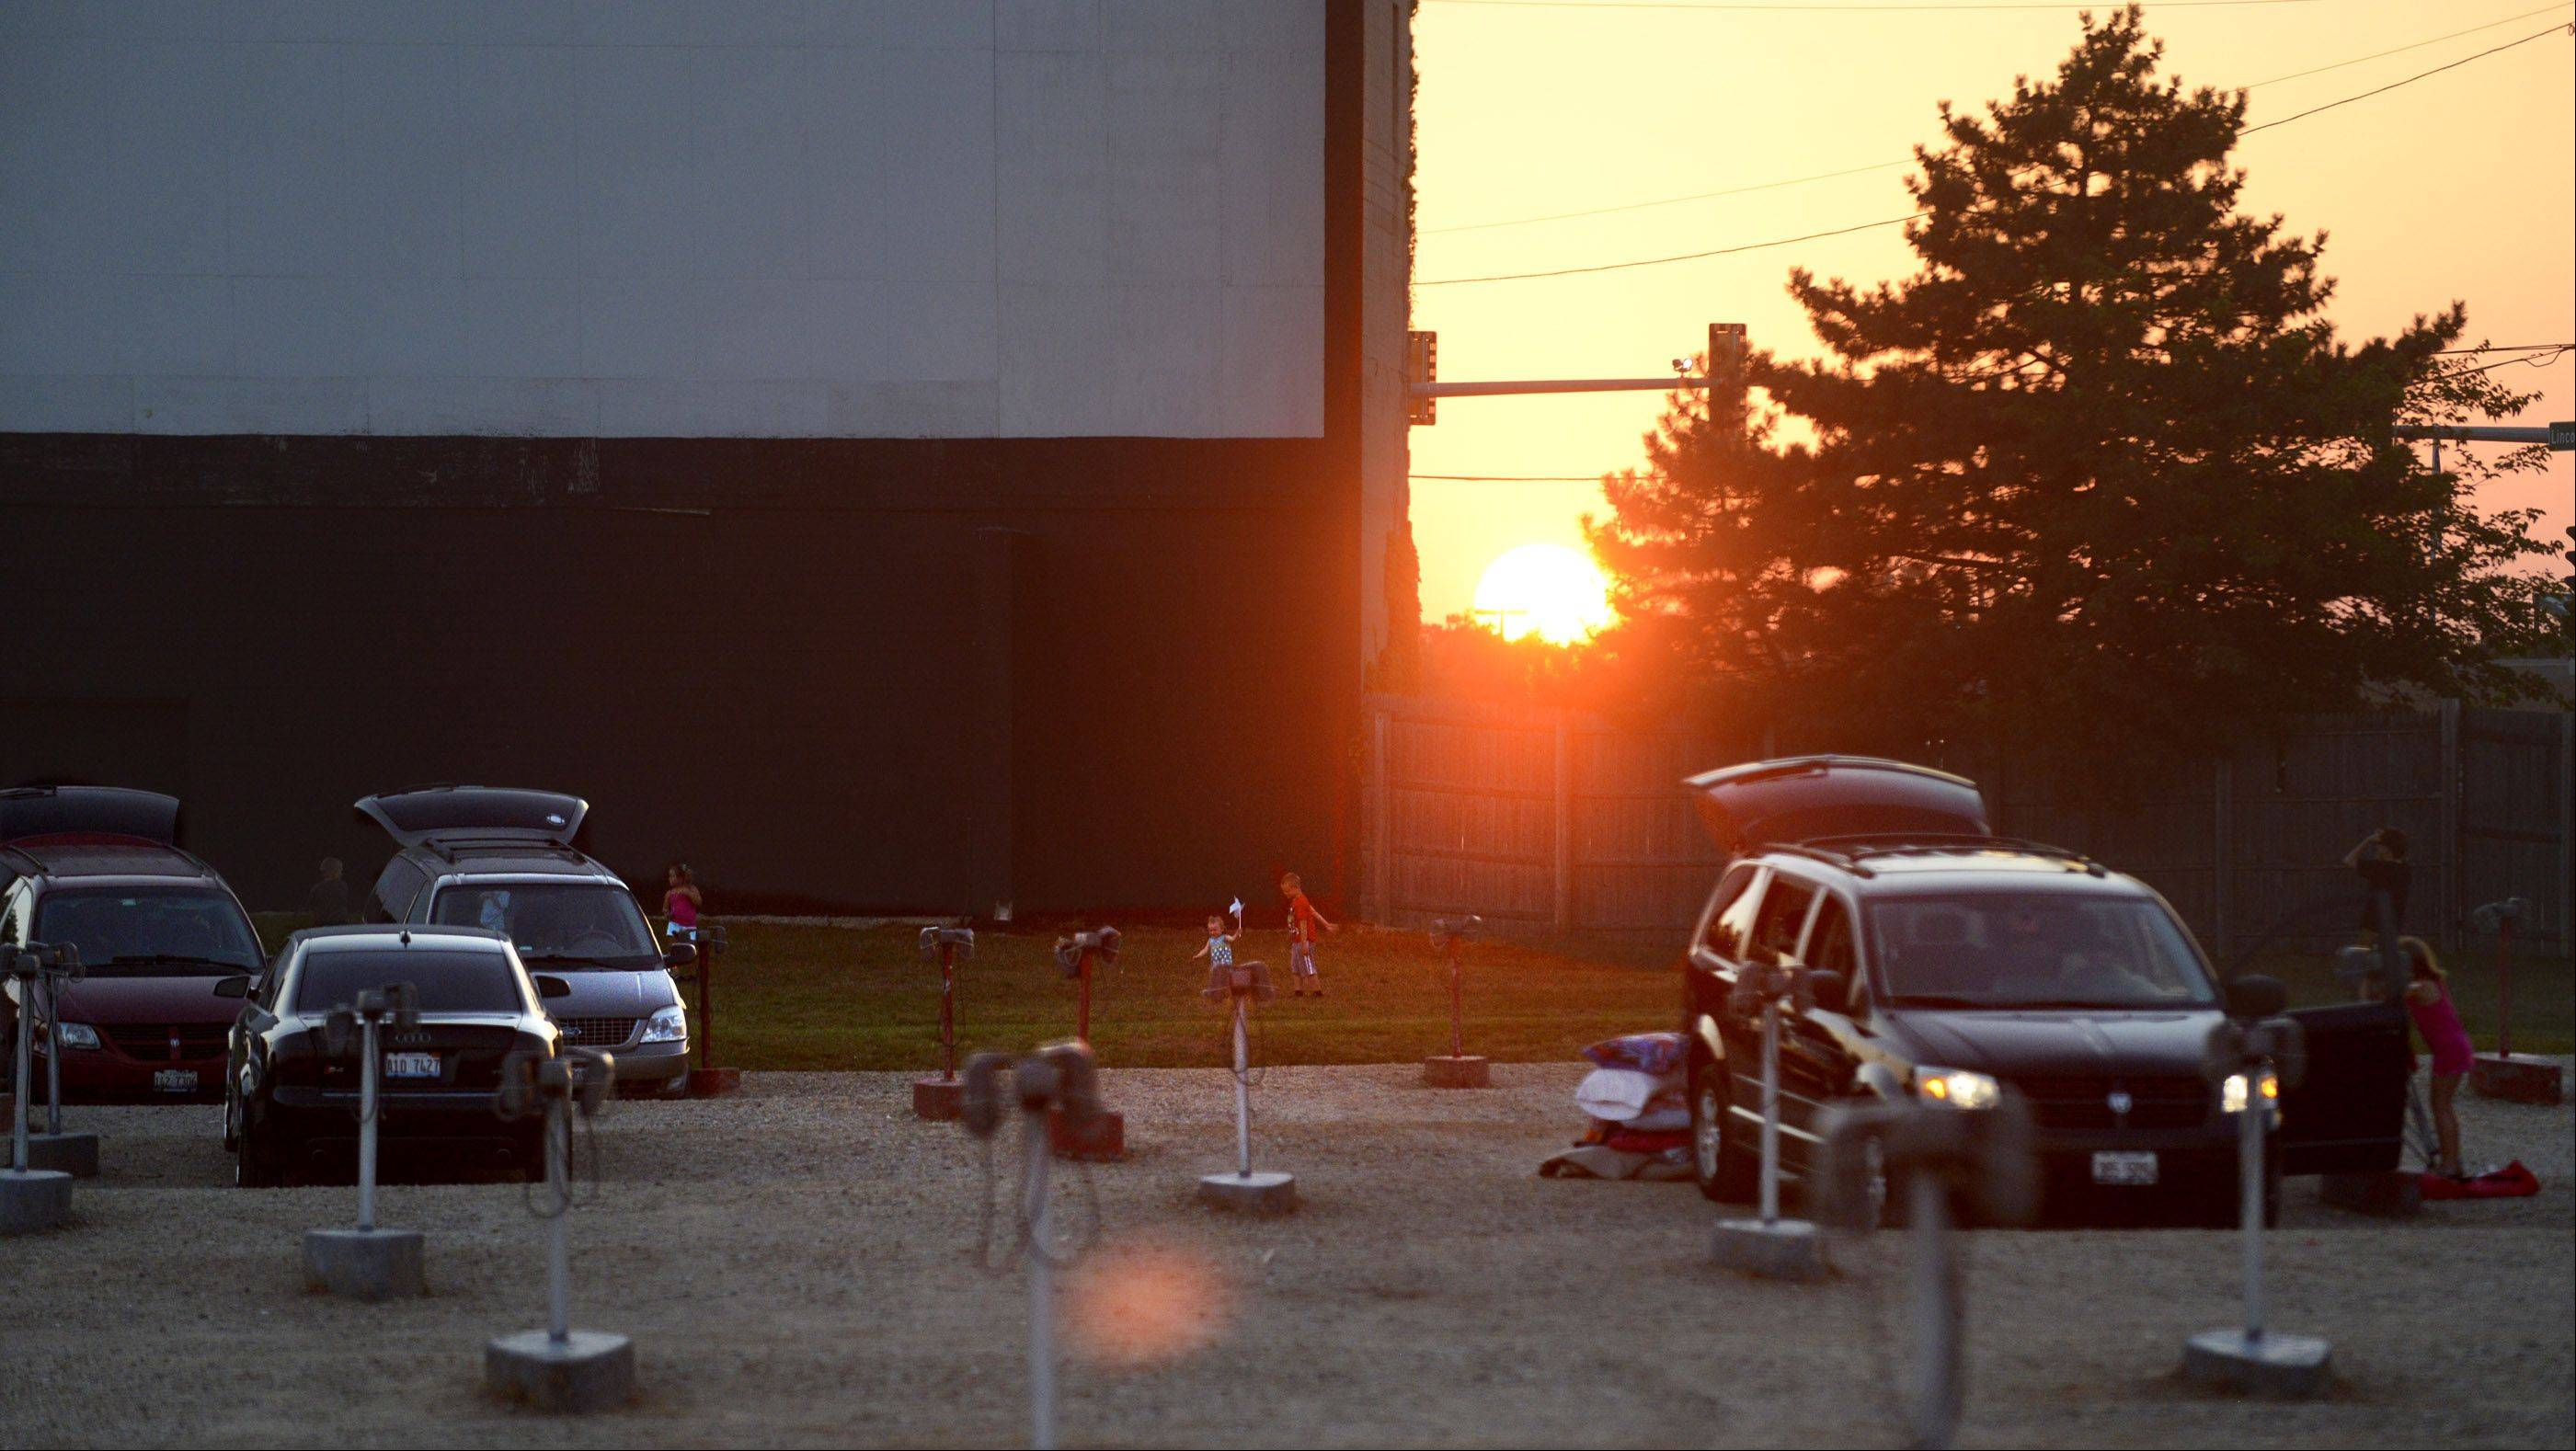 The McHenry Outdoor Theater has been open for 75 years, and its owner says he wants to ensure it stays open by converting to a digital projection system. A fundraising campaign is under way.